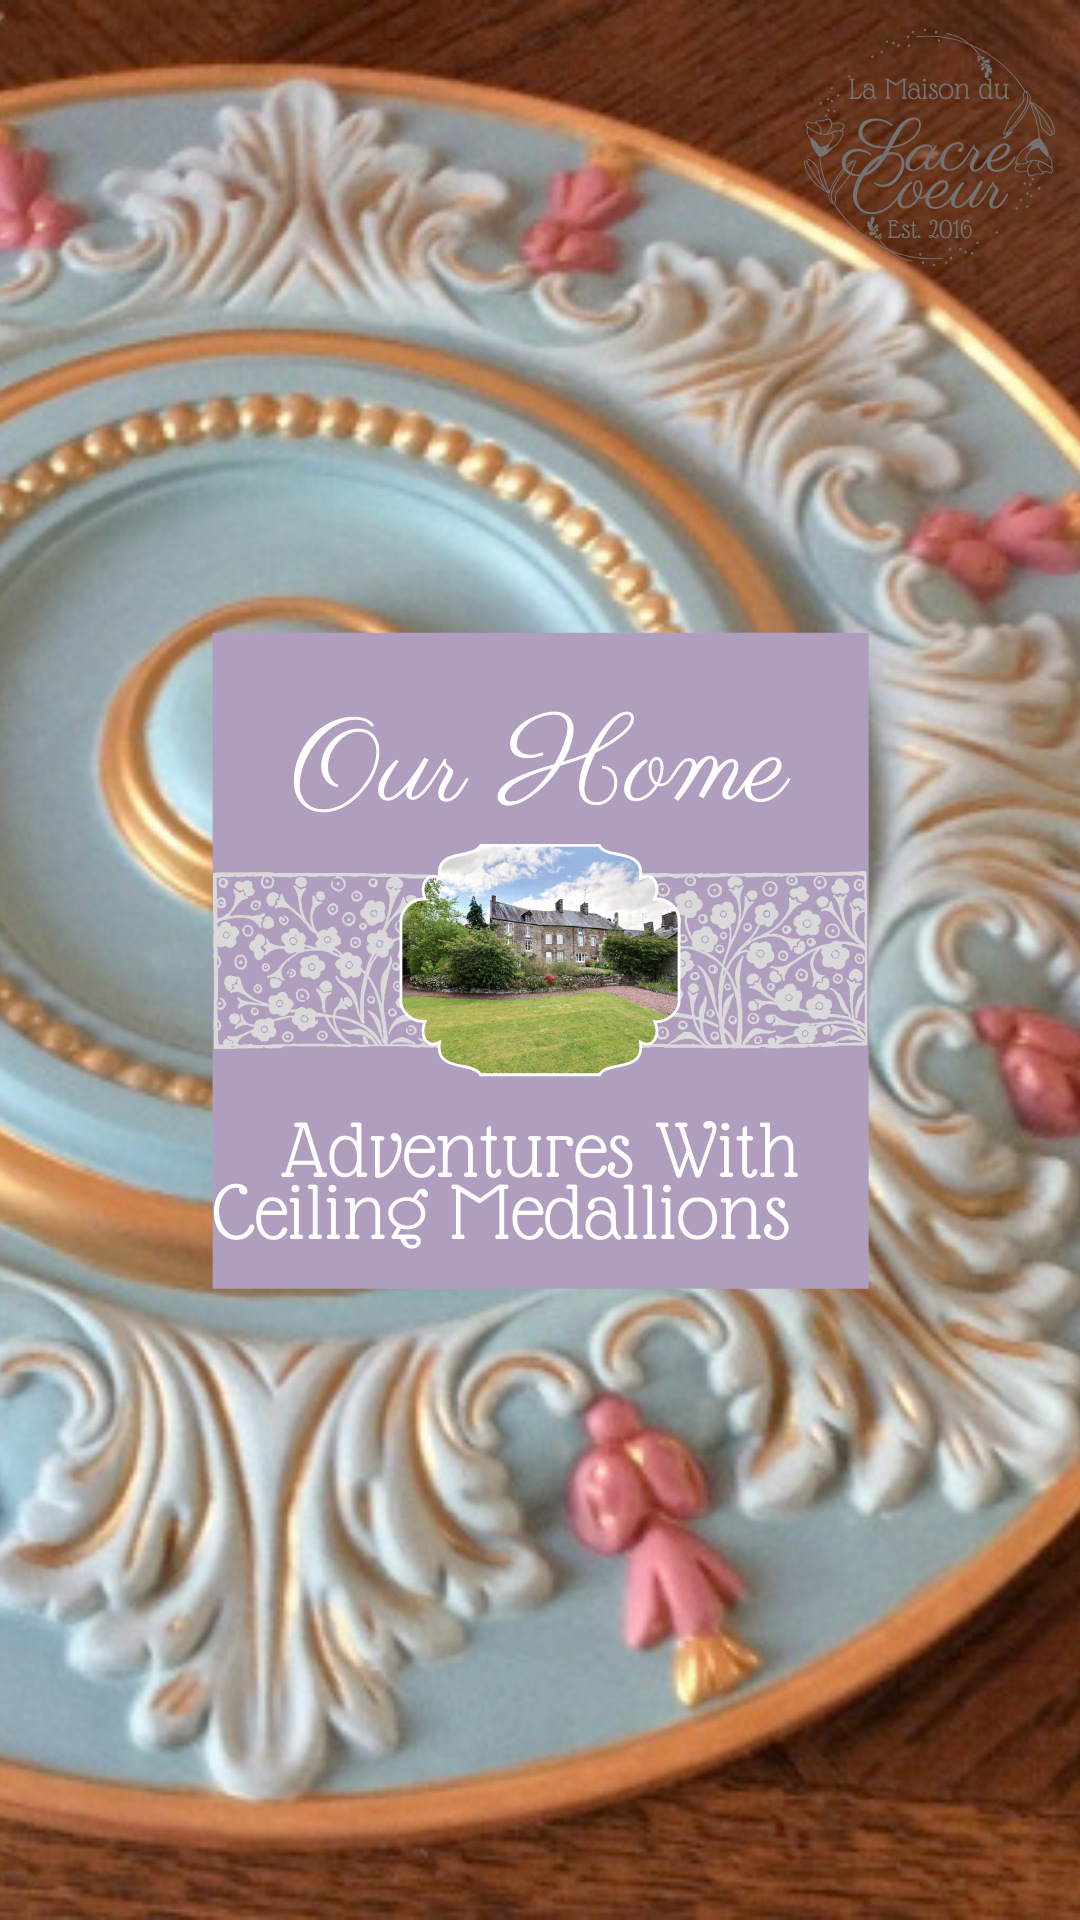 Adventures with ceiling medallions